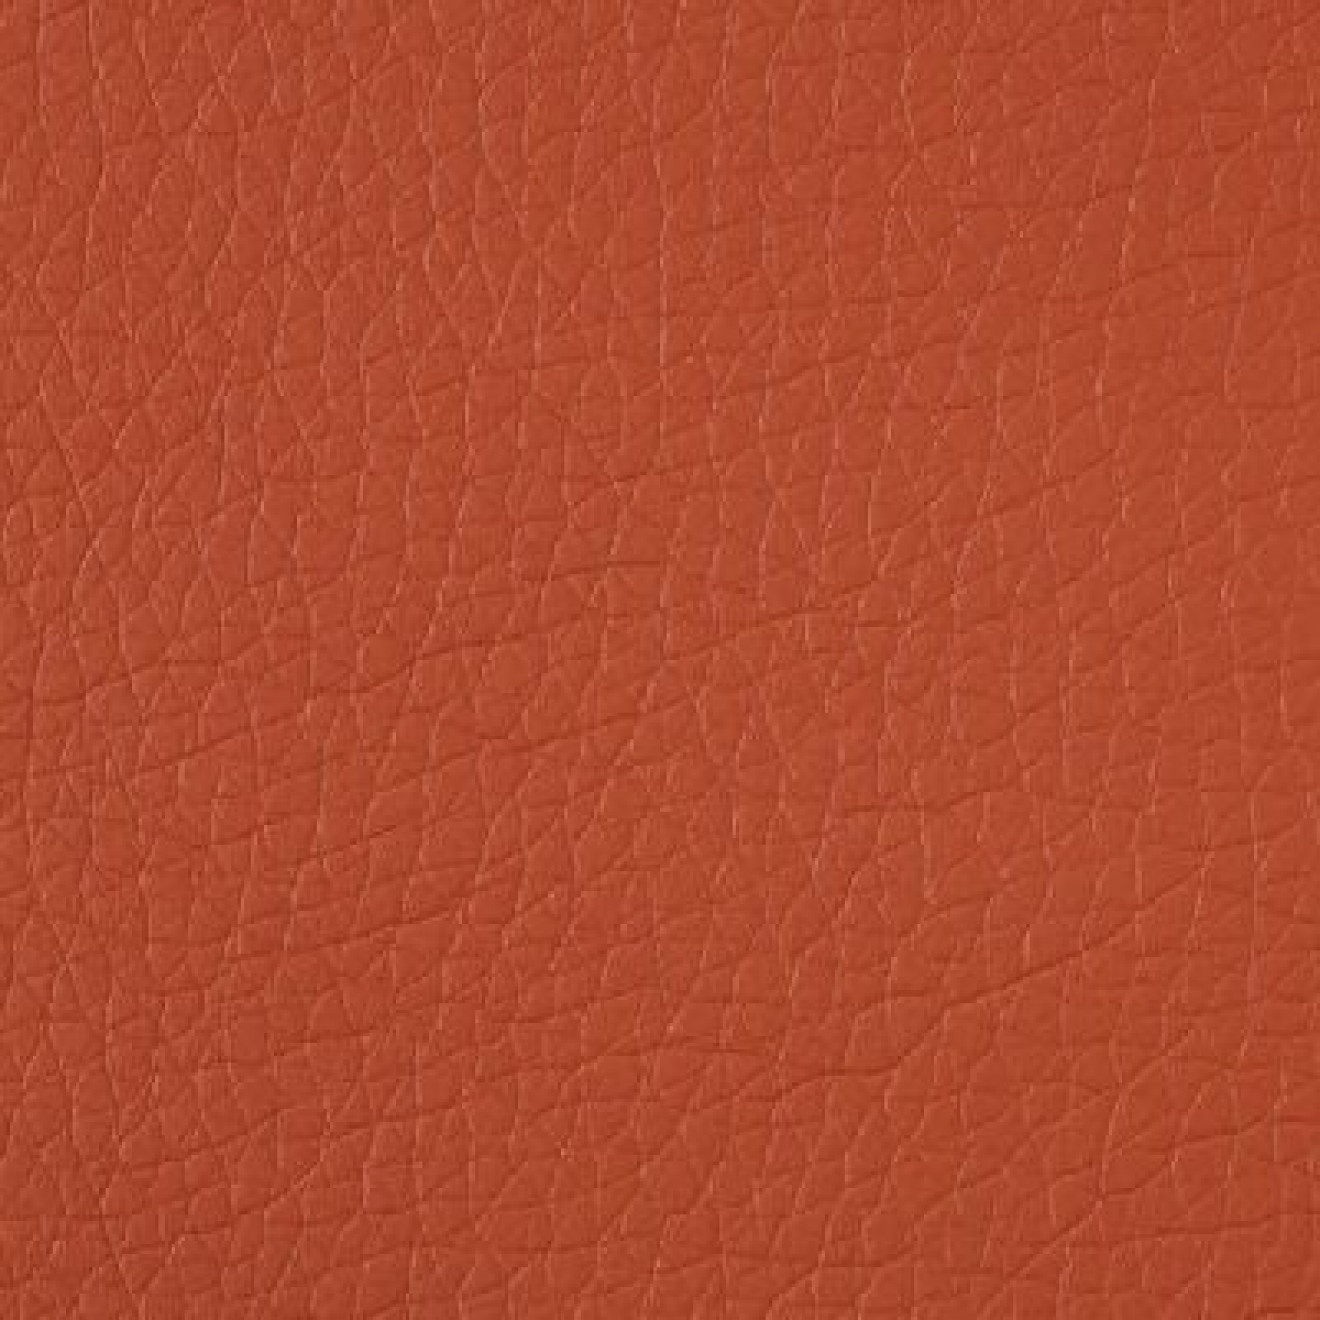 Dreieck - Premium Kunstleder 8440 orange